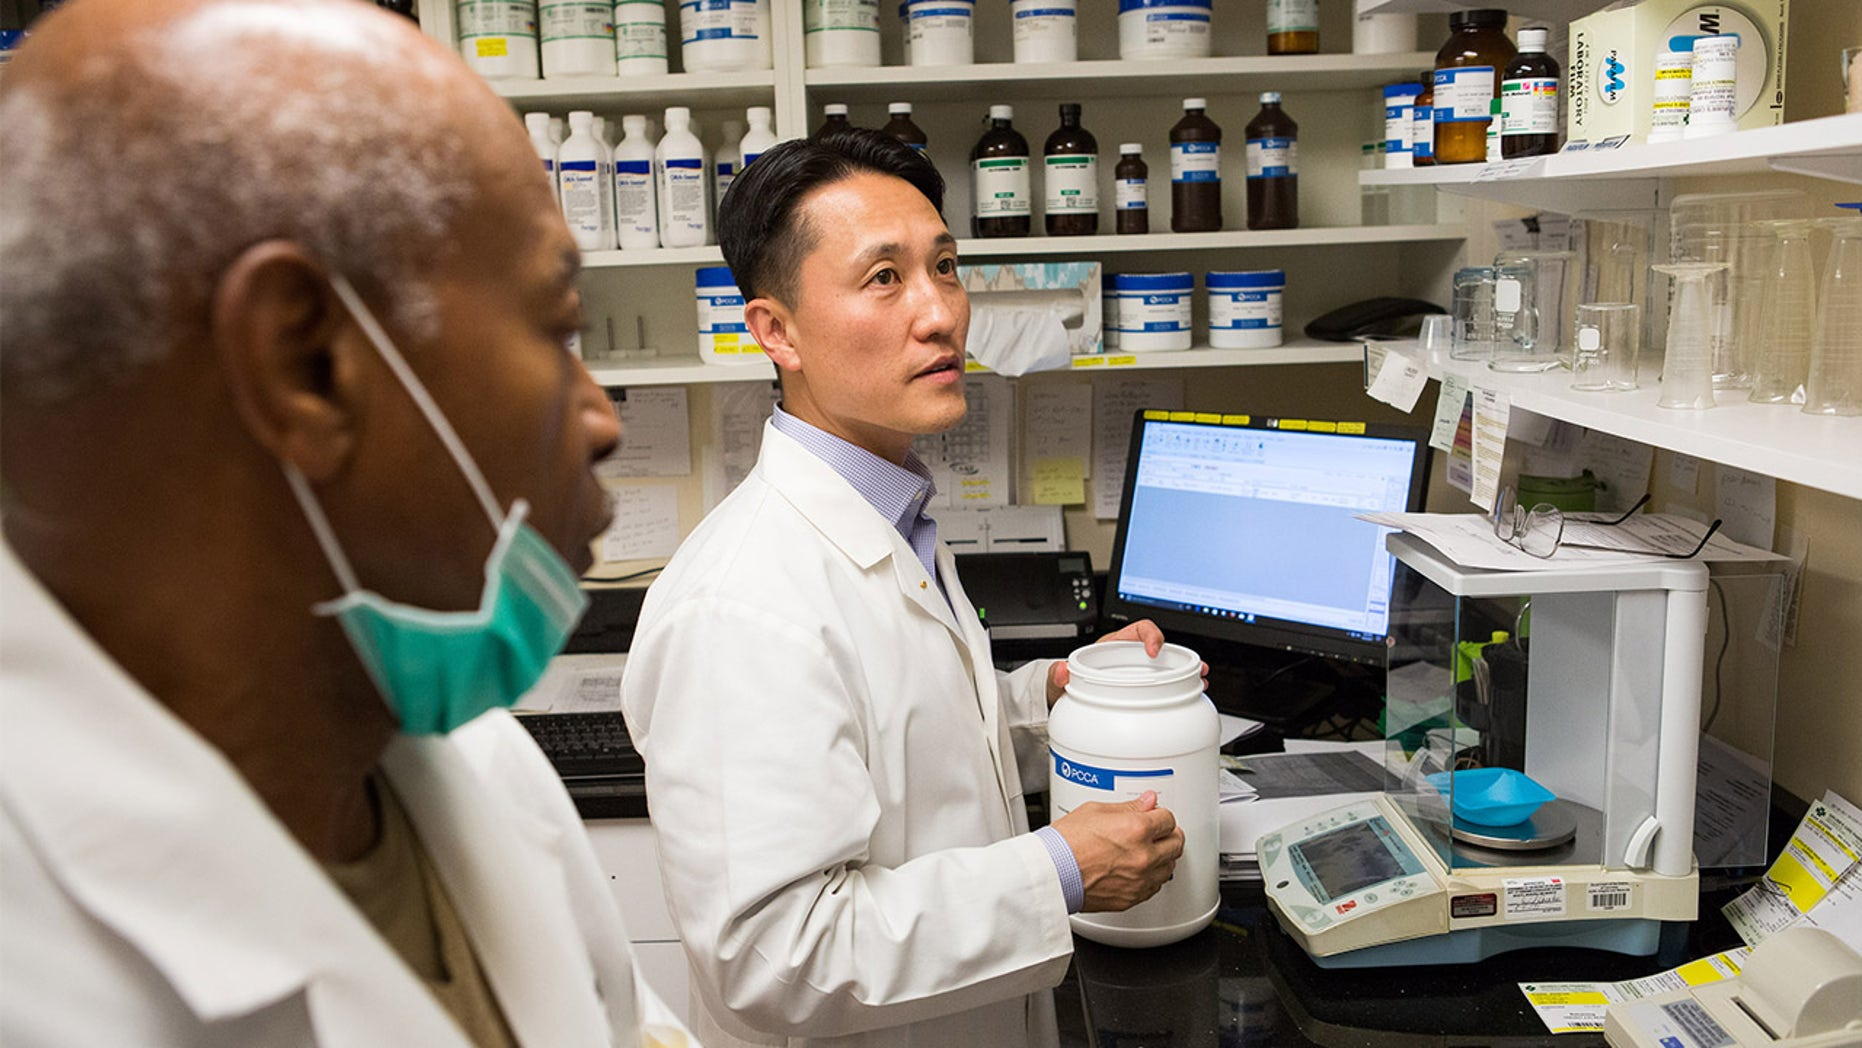 On October 6, 2017, Dr. Michael Kim (center), a pharmacist and owner of Grubb's Pharmacy, prepares medication in the compound of his Northeast, Washington D.C. store with Ron Thompson(left, Compound Technician). Grubb's Pharmacy, established in 1867, is the oldest pharmacy in D.C., and with its convenient location to the U.S. Capitol, services many Members of Congress.